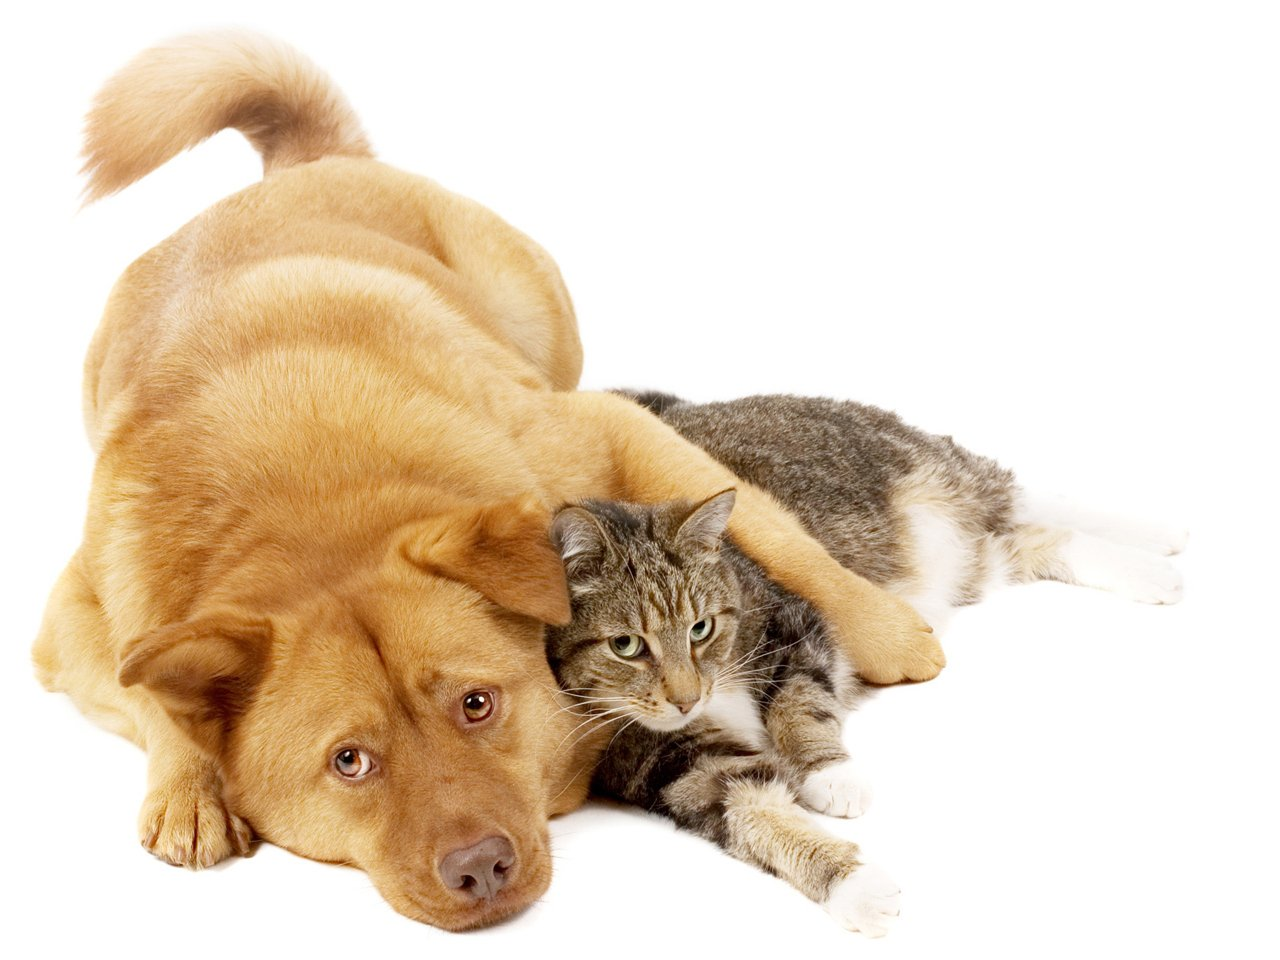 Dog And Cat On White Background computer desktop 1280x960